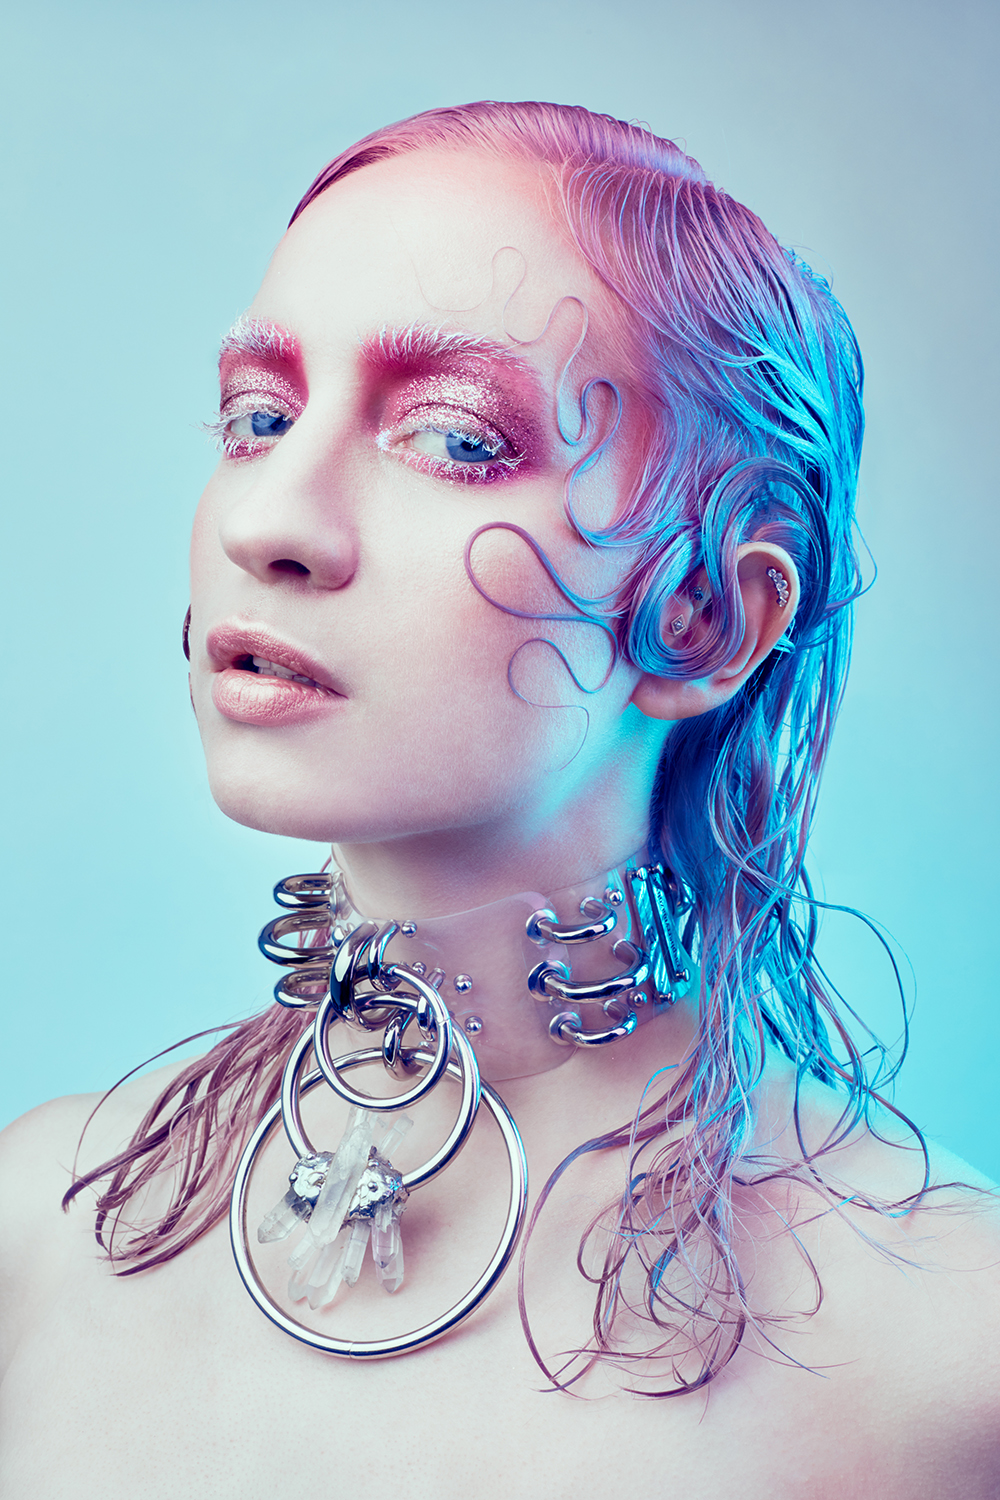 The same piece worn by My Fragility in a beauty project. Hair & Makeup by Eline Deblauwe.